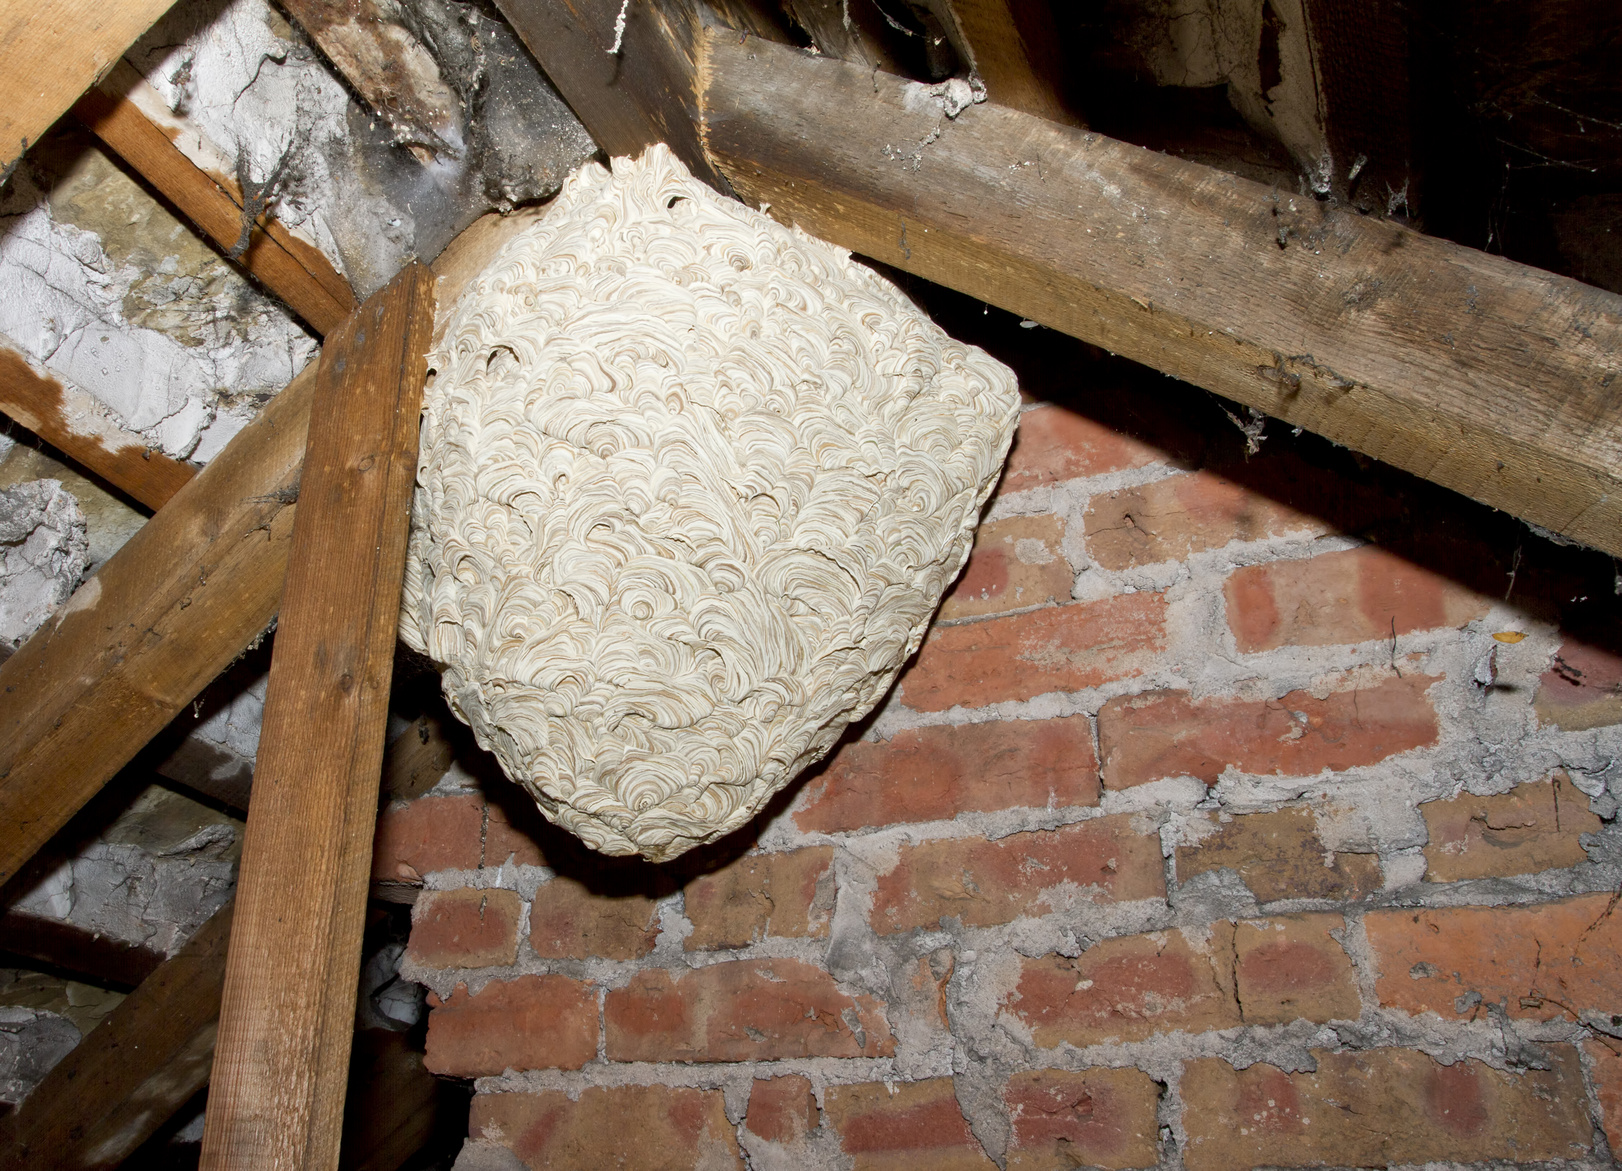 Wasp nest removal Wiltshire, Trowbridge, Bath, Somerset.